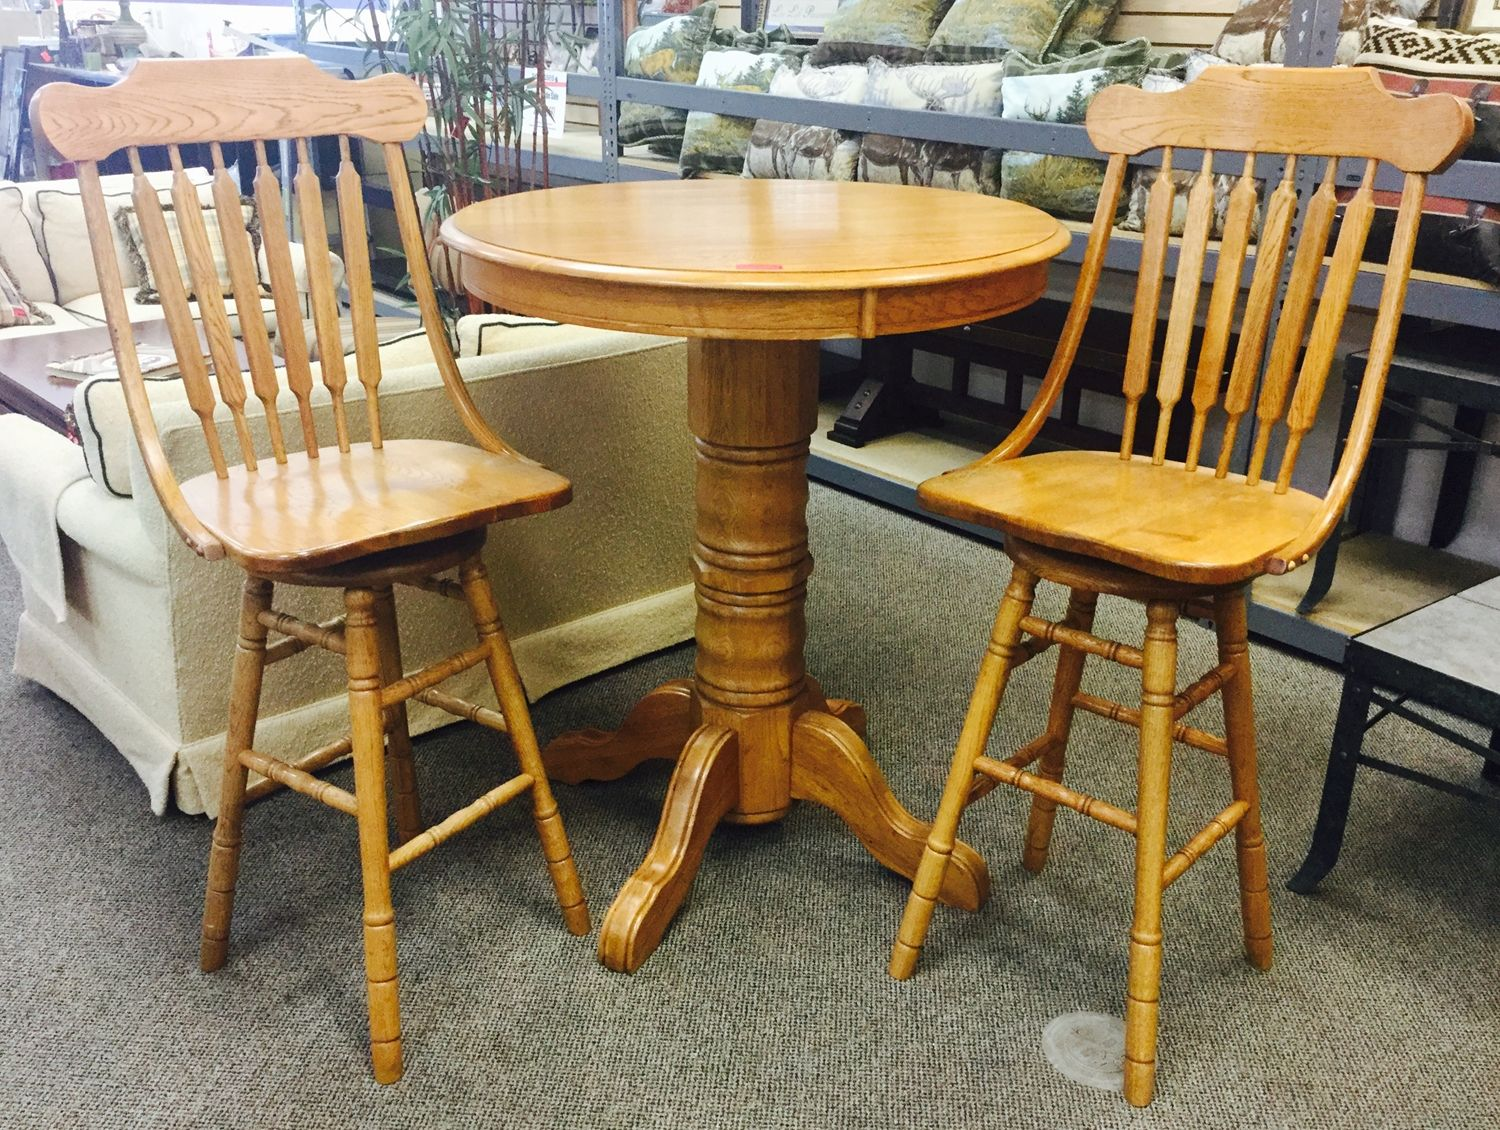 Save 20 Off Everything Thru Memorial Day Solid Oak Bar Height Table Set With Matching Stools In Great Condition Now On For Only 120